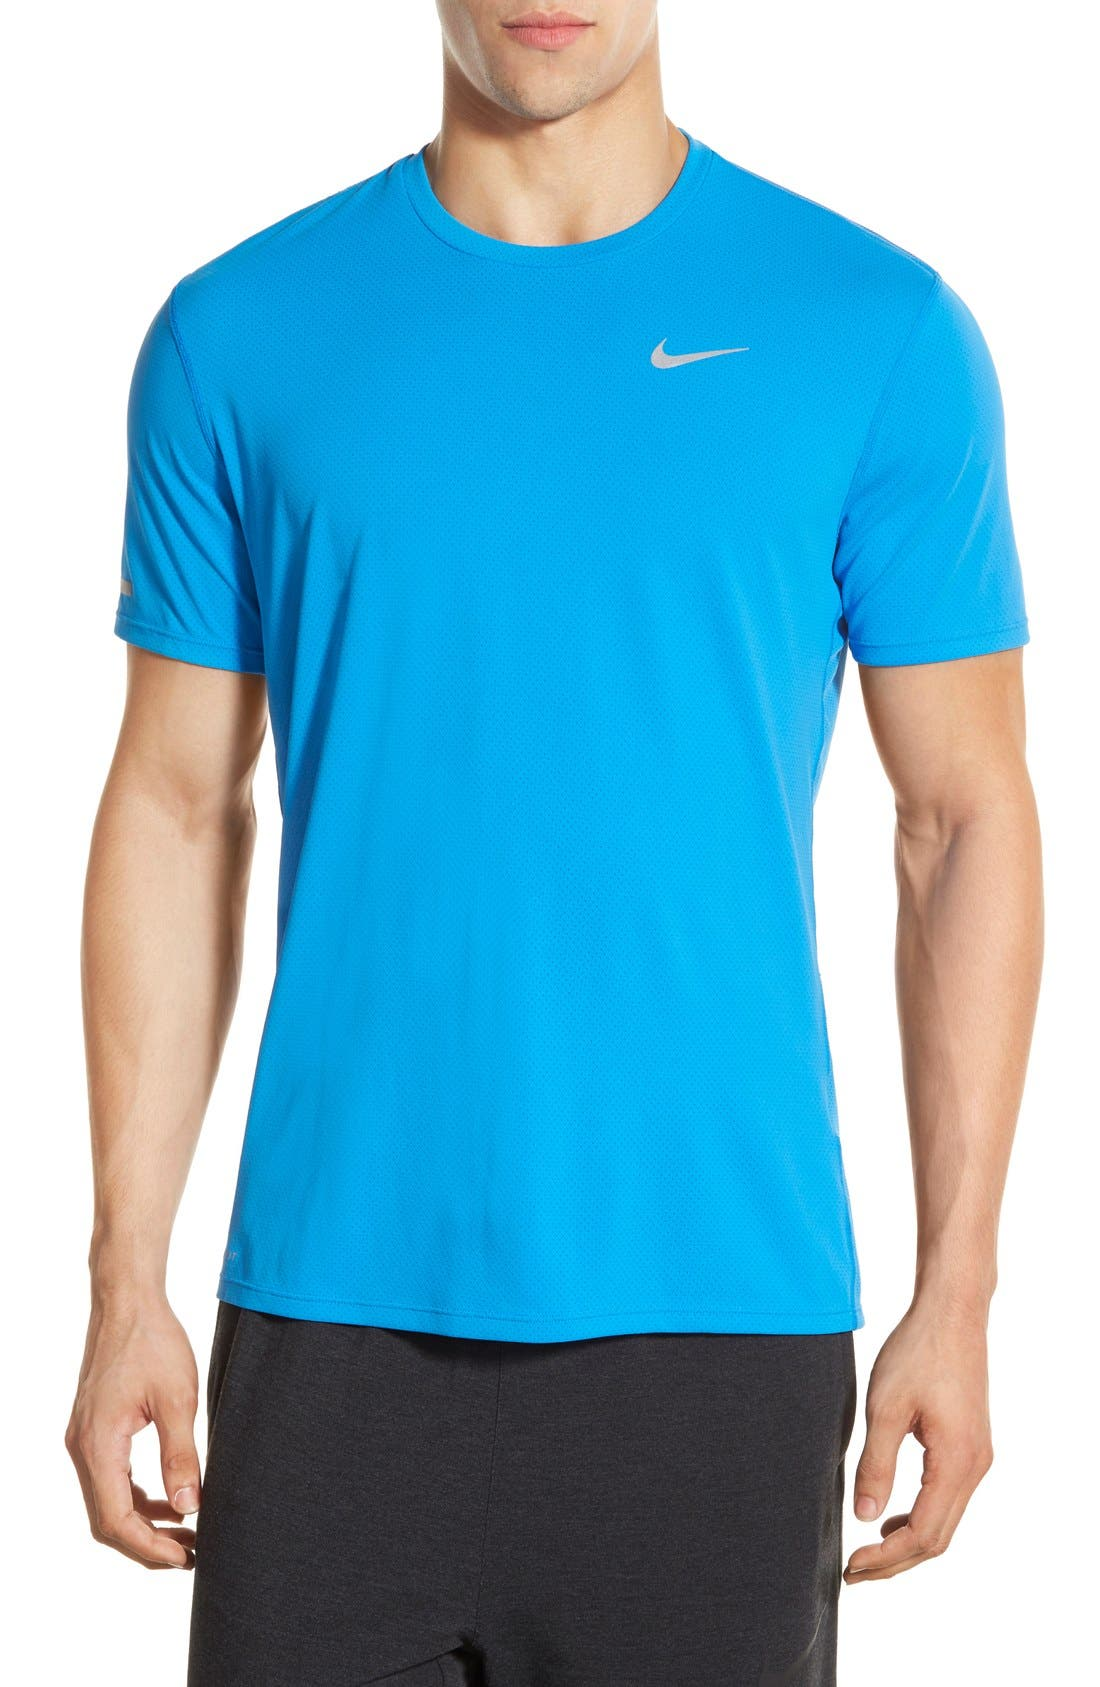 'Contour' Mesh Dri-FIT Running T-Shirt,                             Main thumbnail 1, color,                             Photo Blue/ Reflective Silver